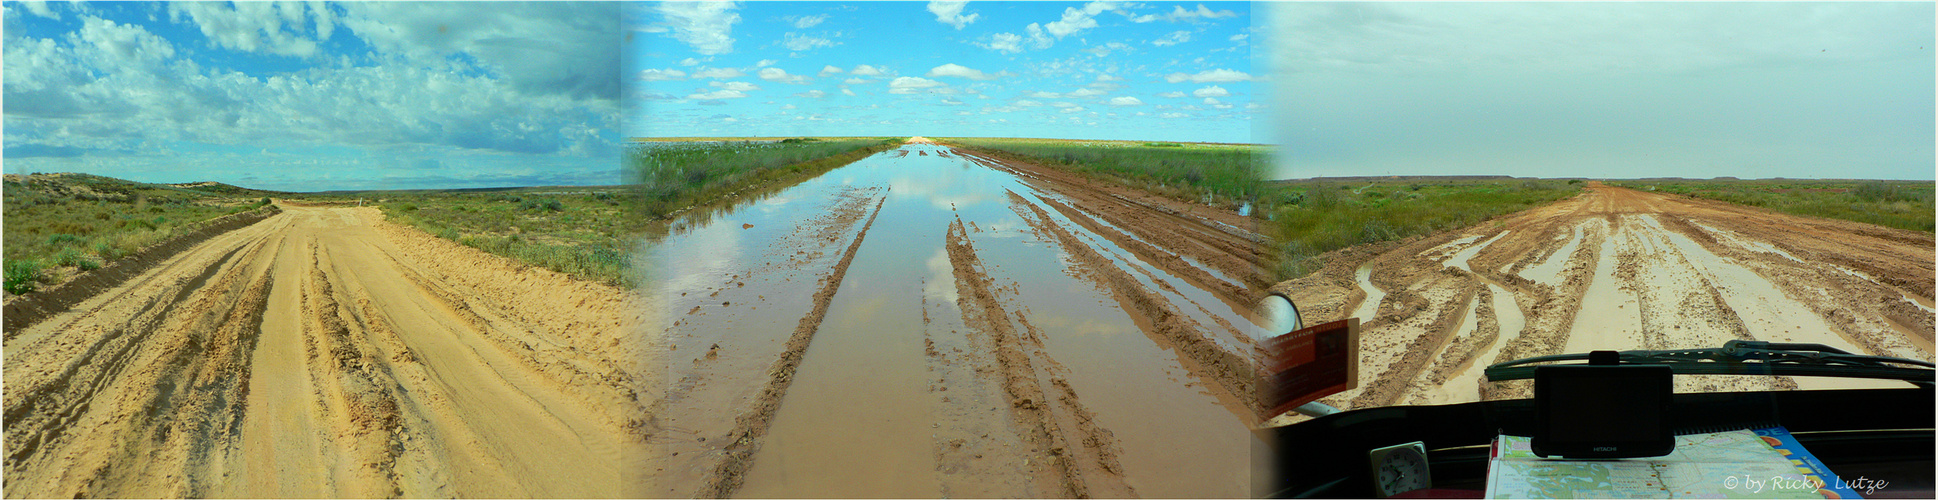 *** From Sand to Water to Mud and more Rain / Birdsville Track ***